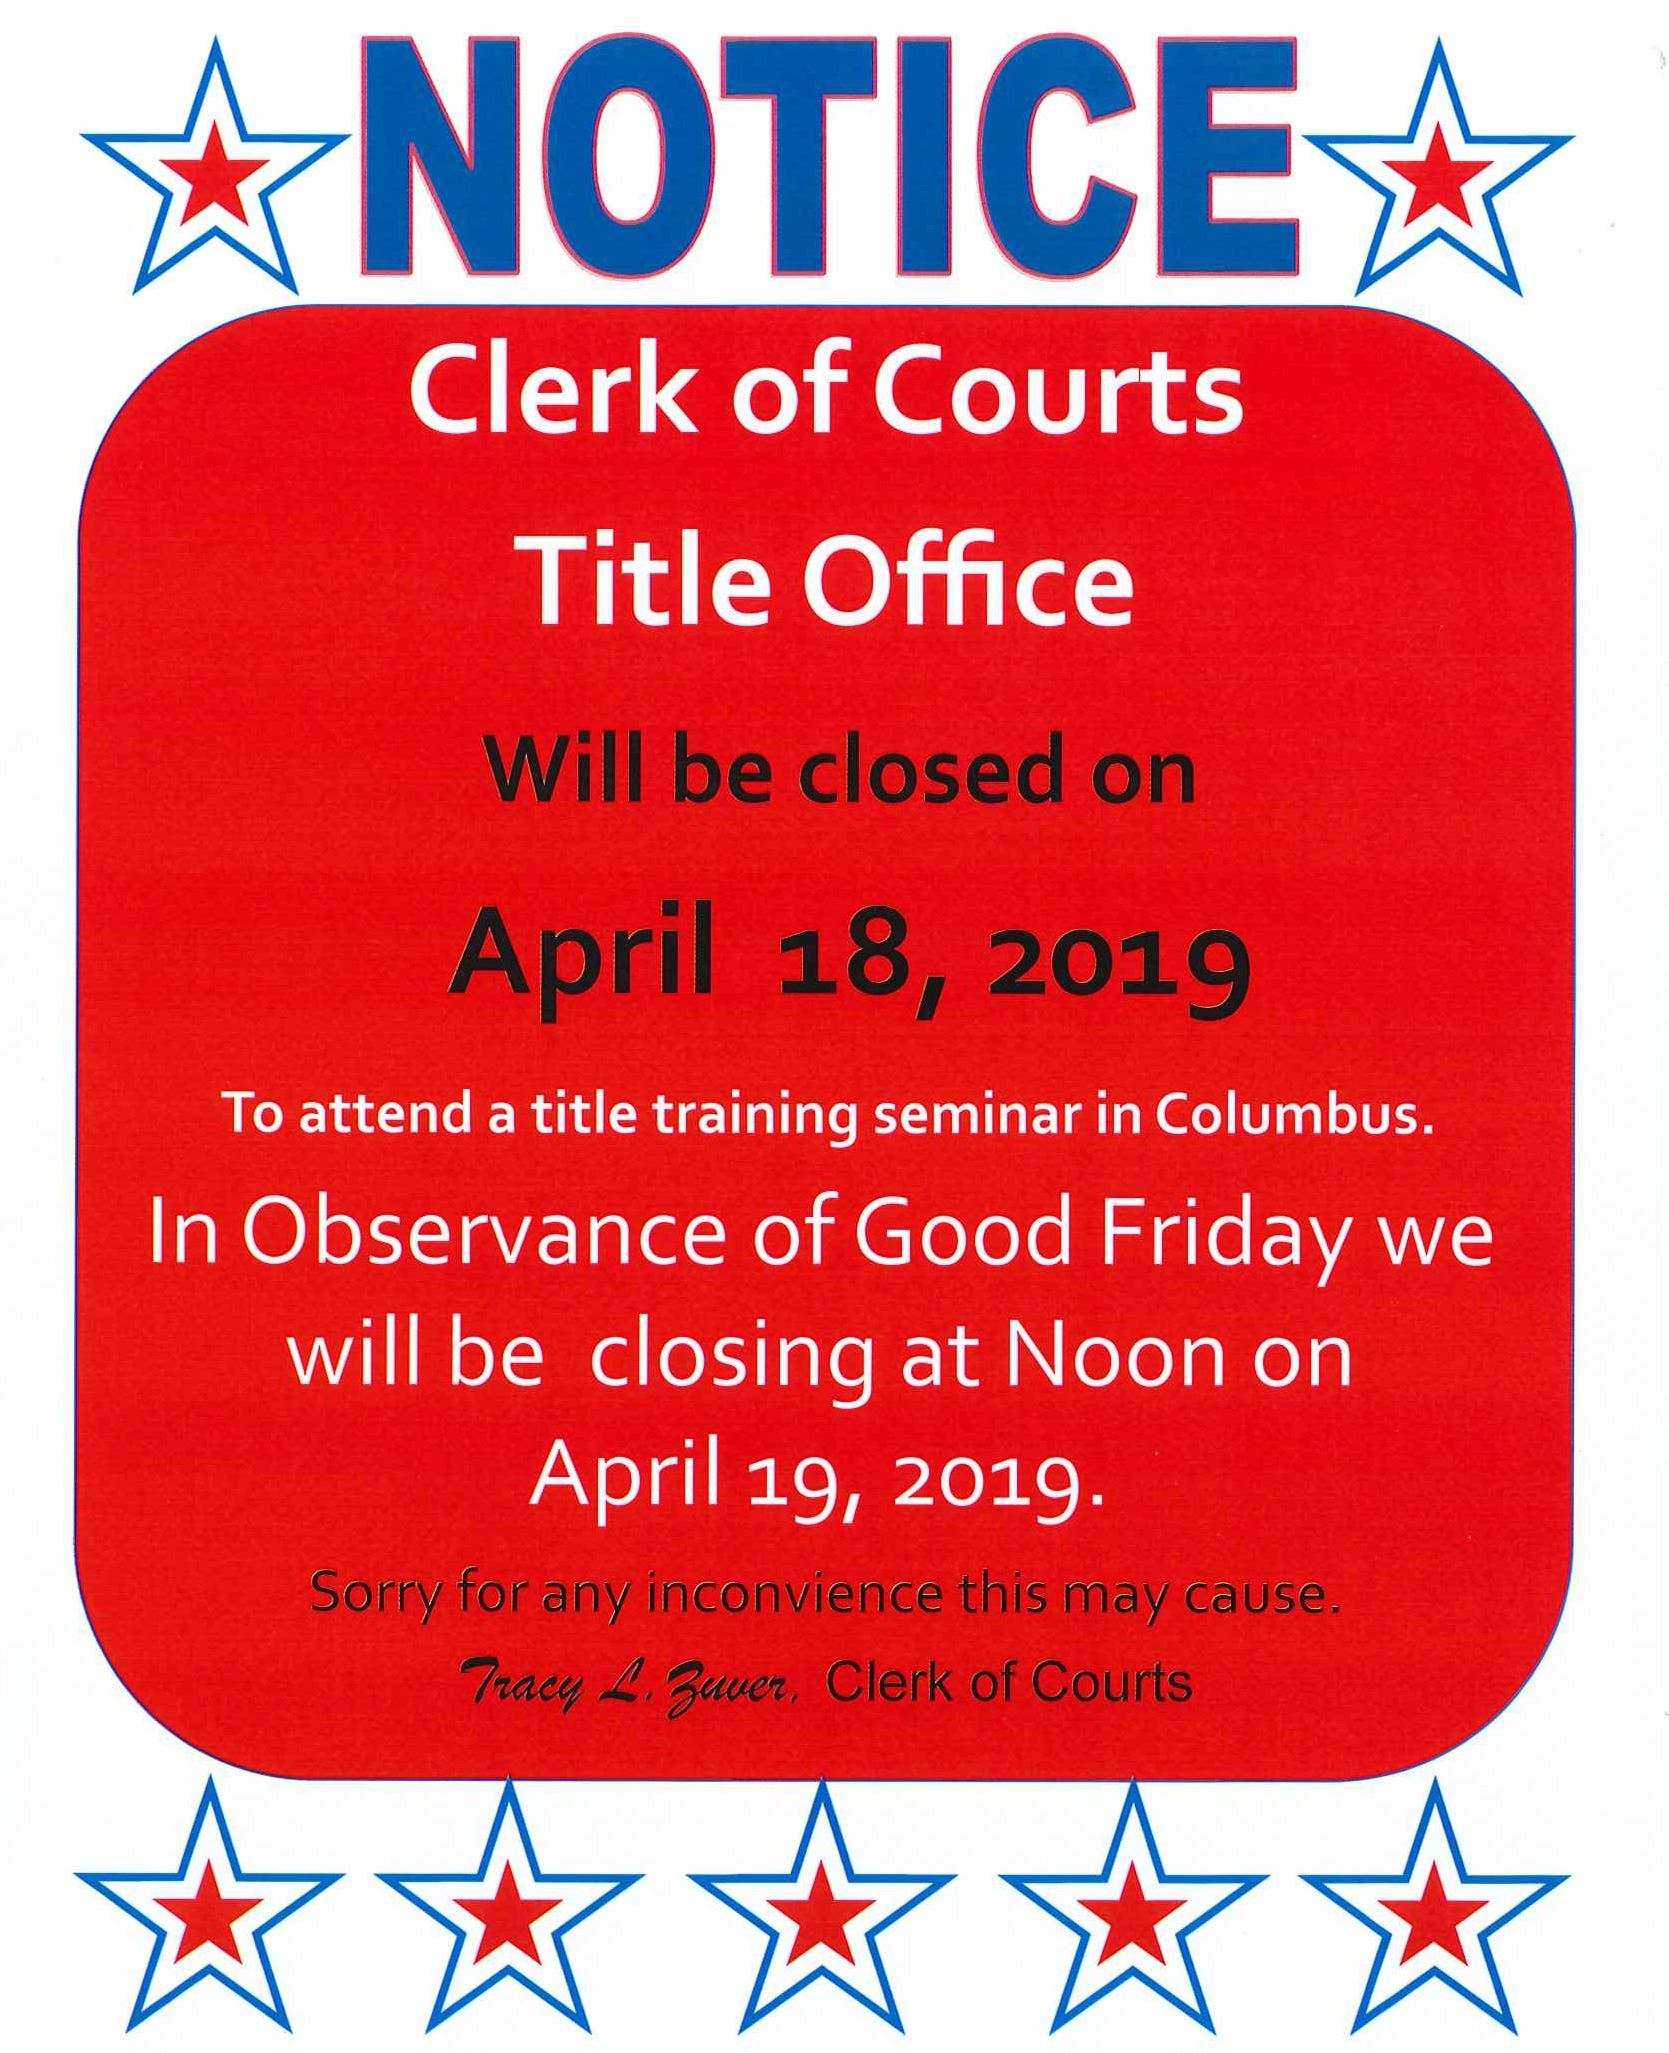 Clerk of Courts Title Office will be closed for training on April 18th, 2019